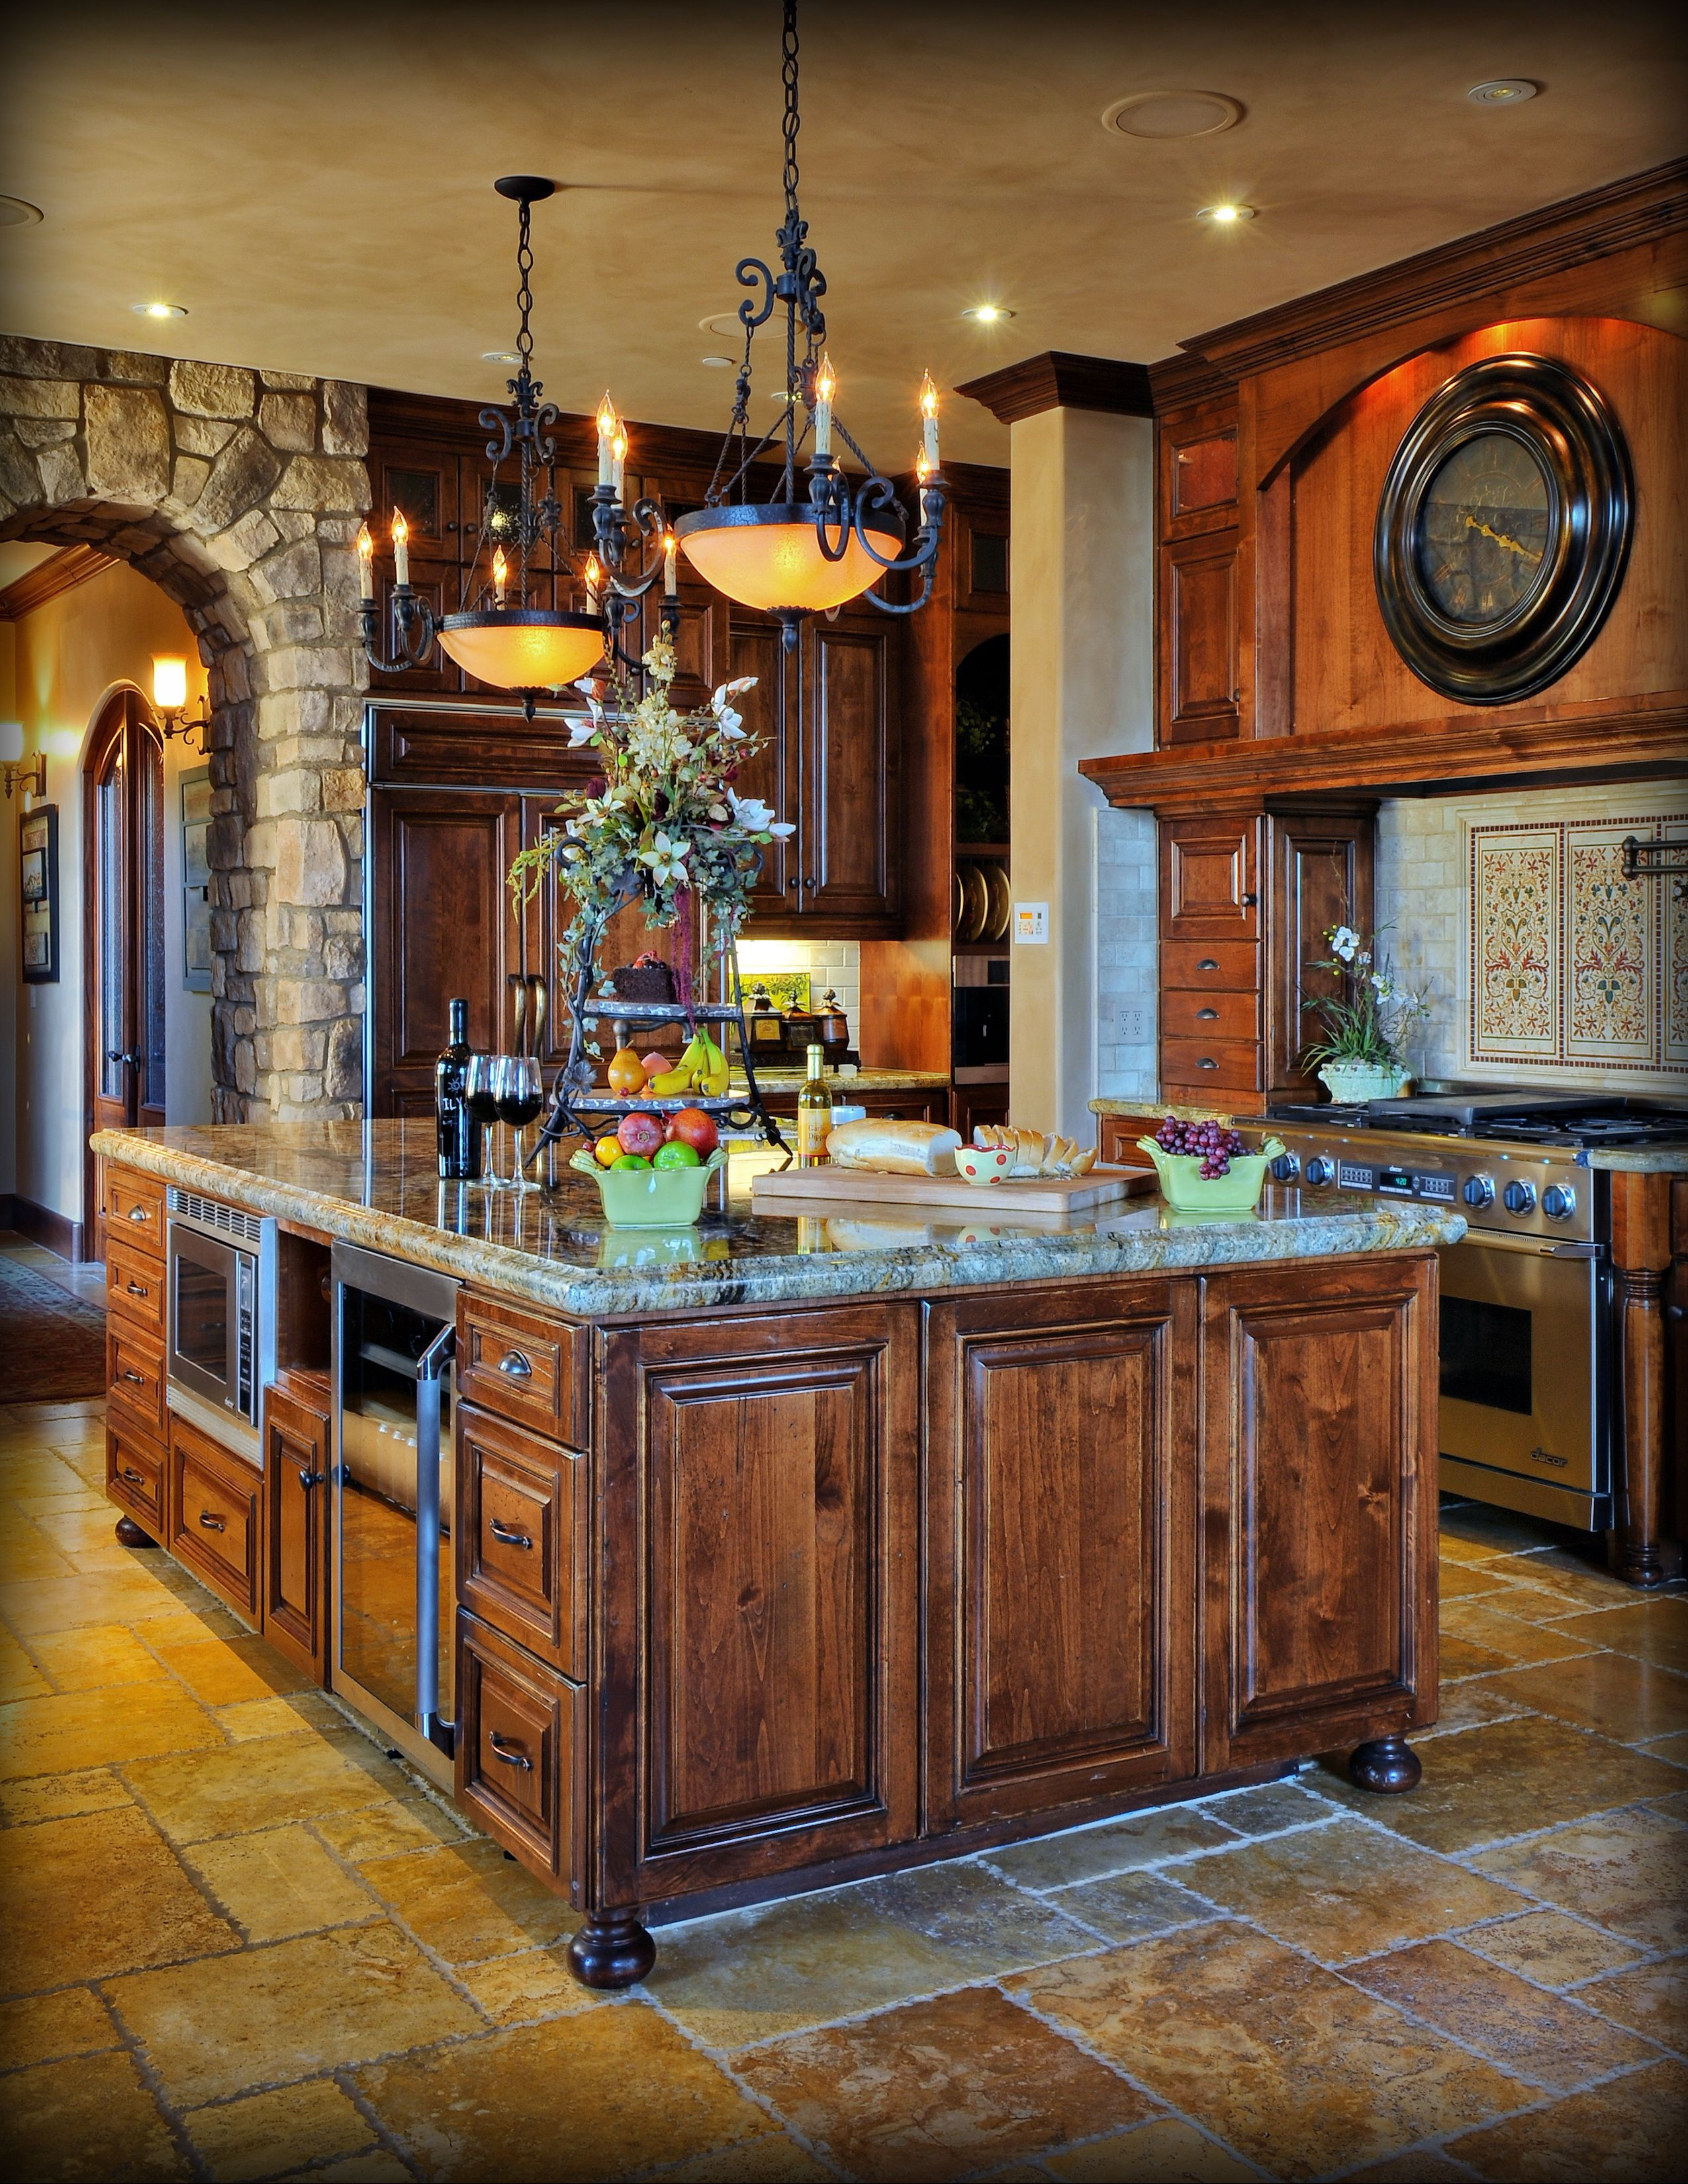 Holland 39 S Custom Cabinets San Diego County 619 443 6081 Kitchens Pinterest Custom